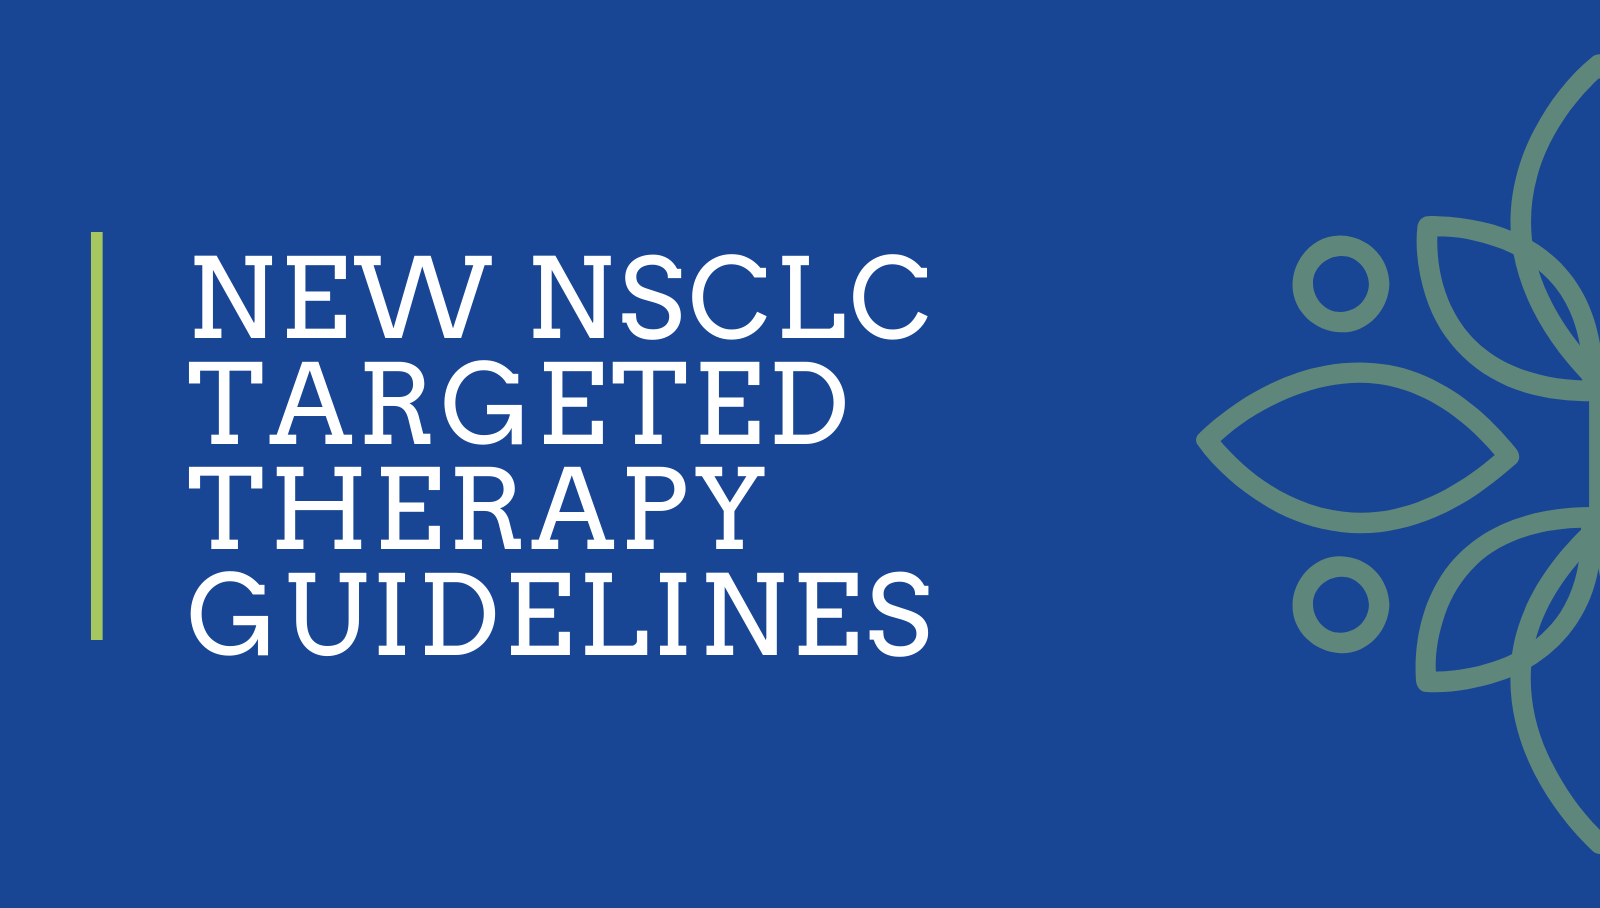 New NSCLC Targeted Therapy Guidelines published